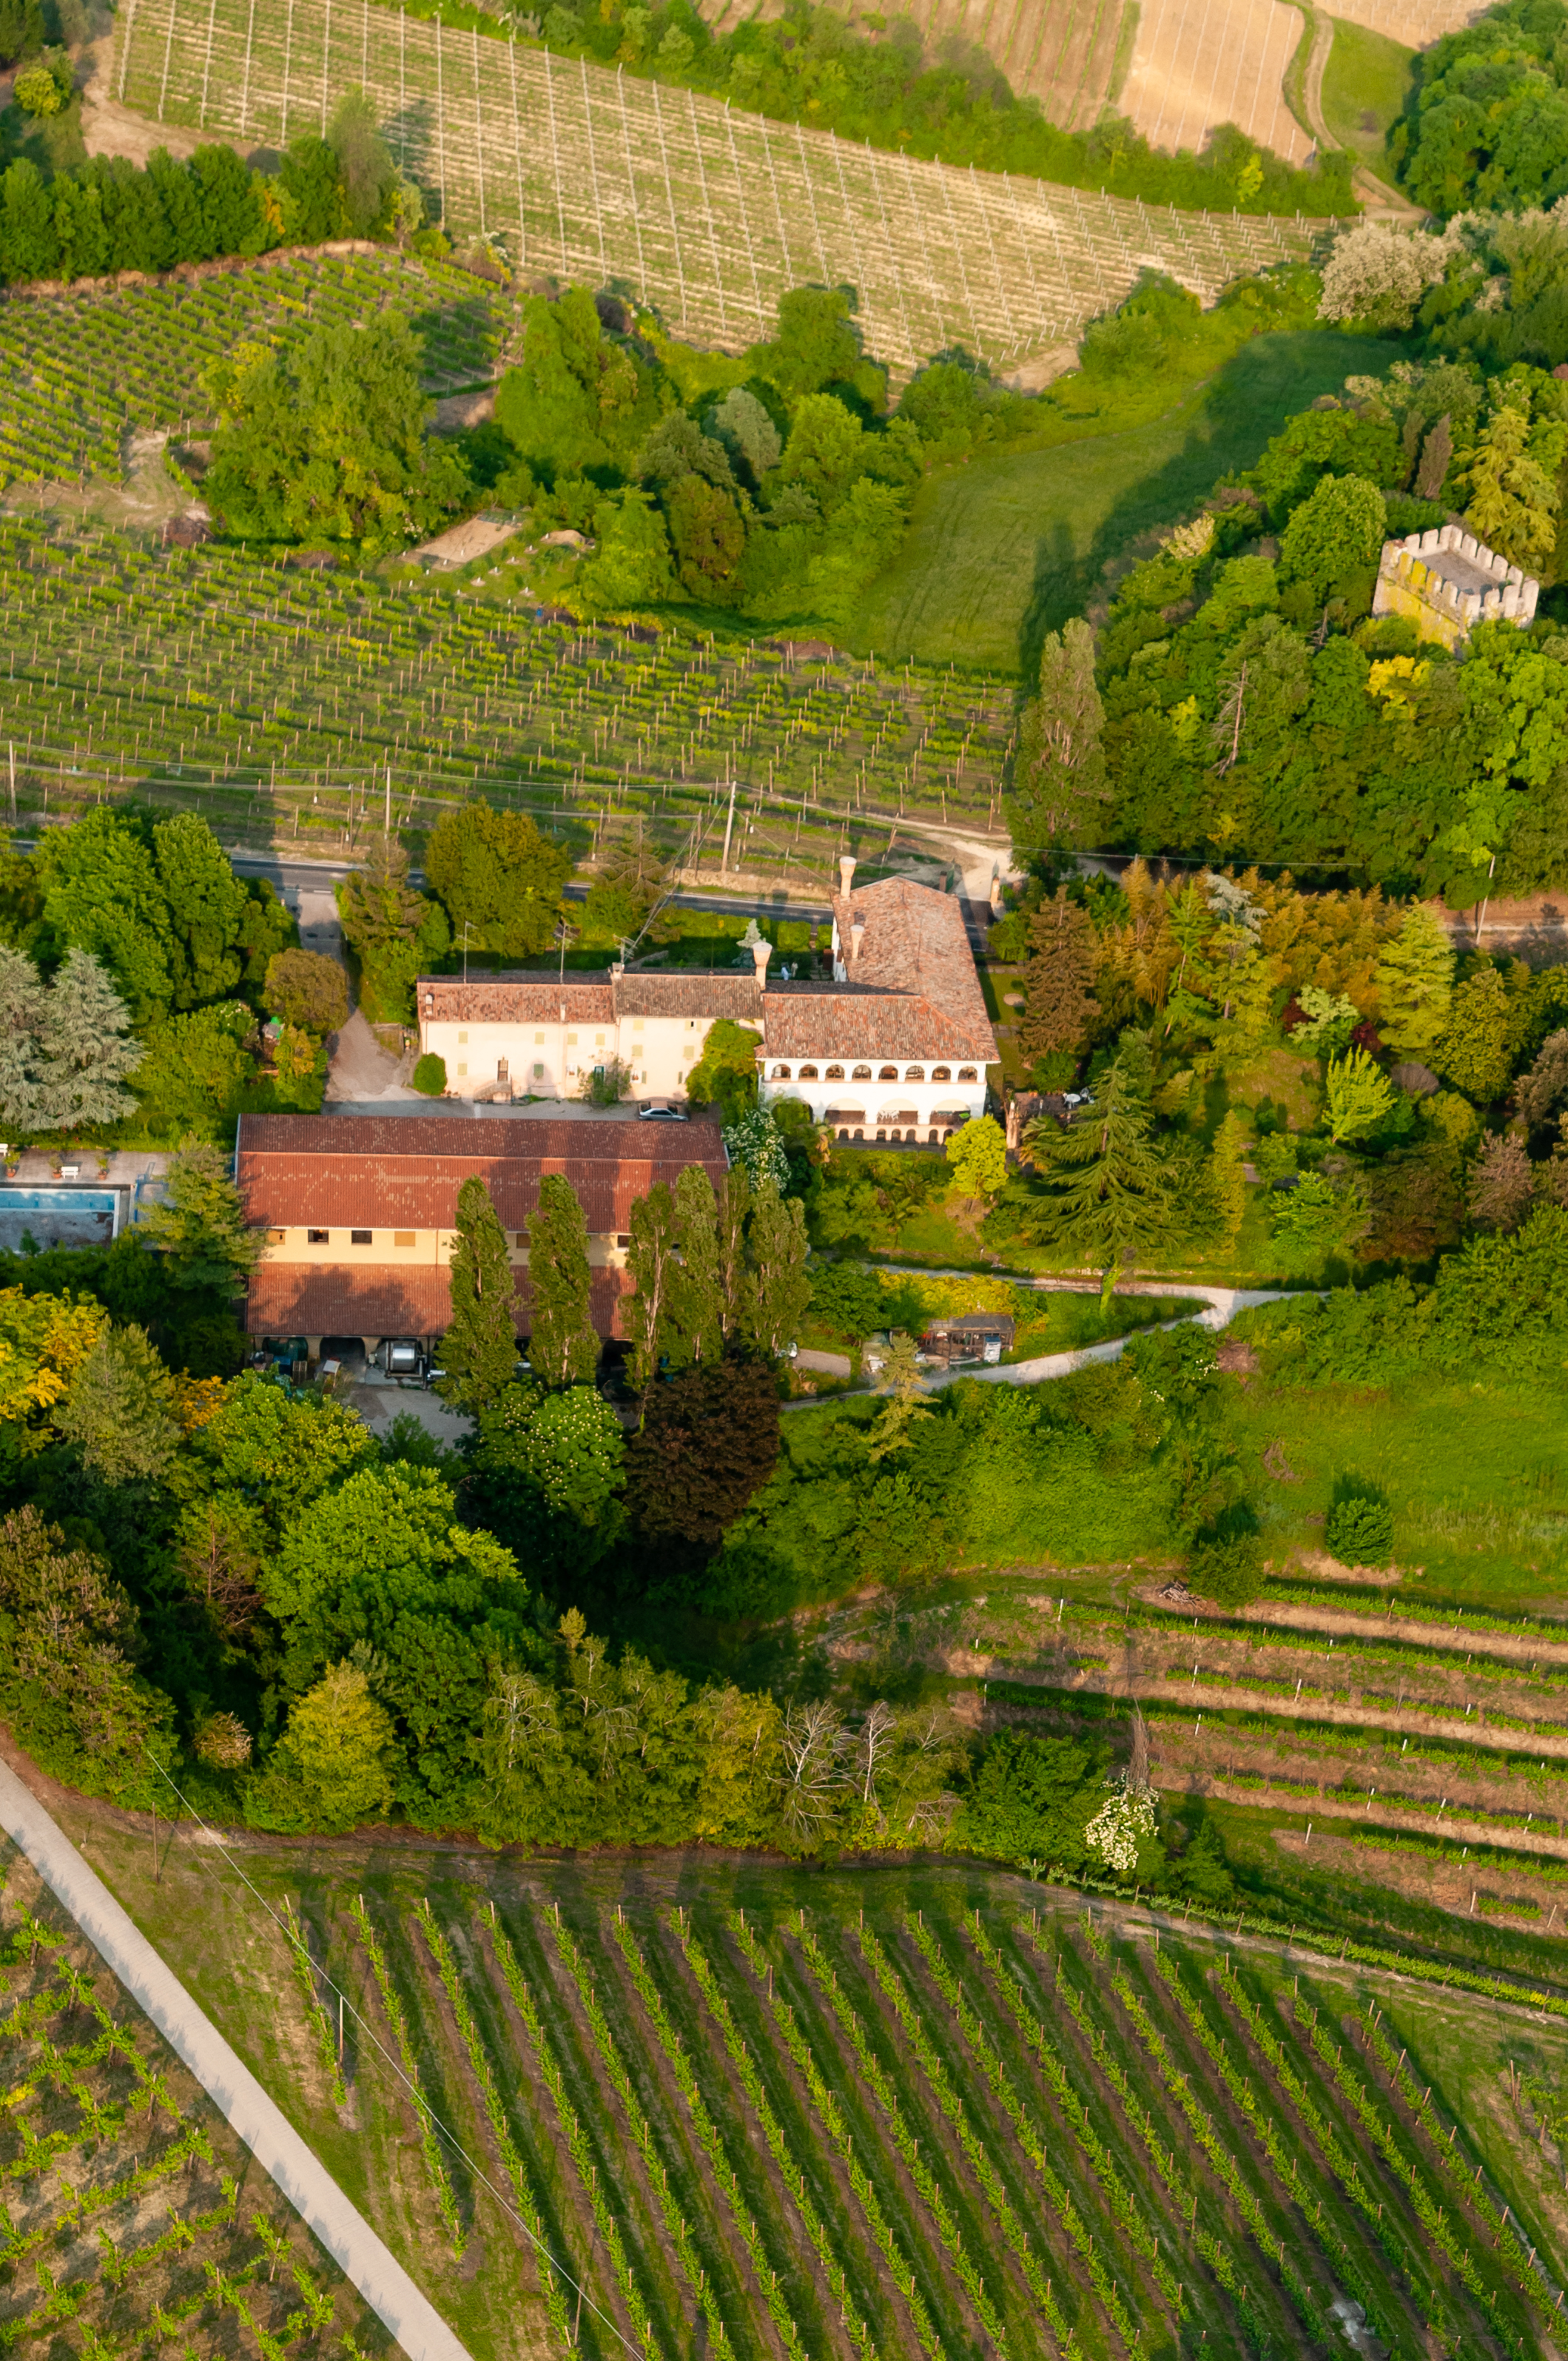 View of the Tenuta di Collalbrigo cellar and its surrounding vineyards.